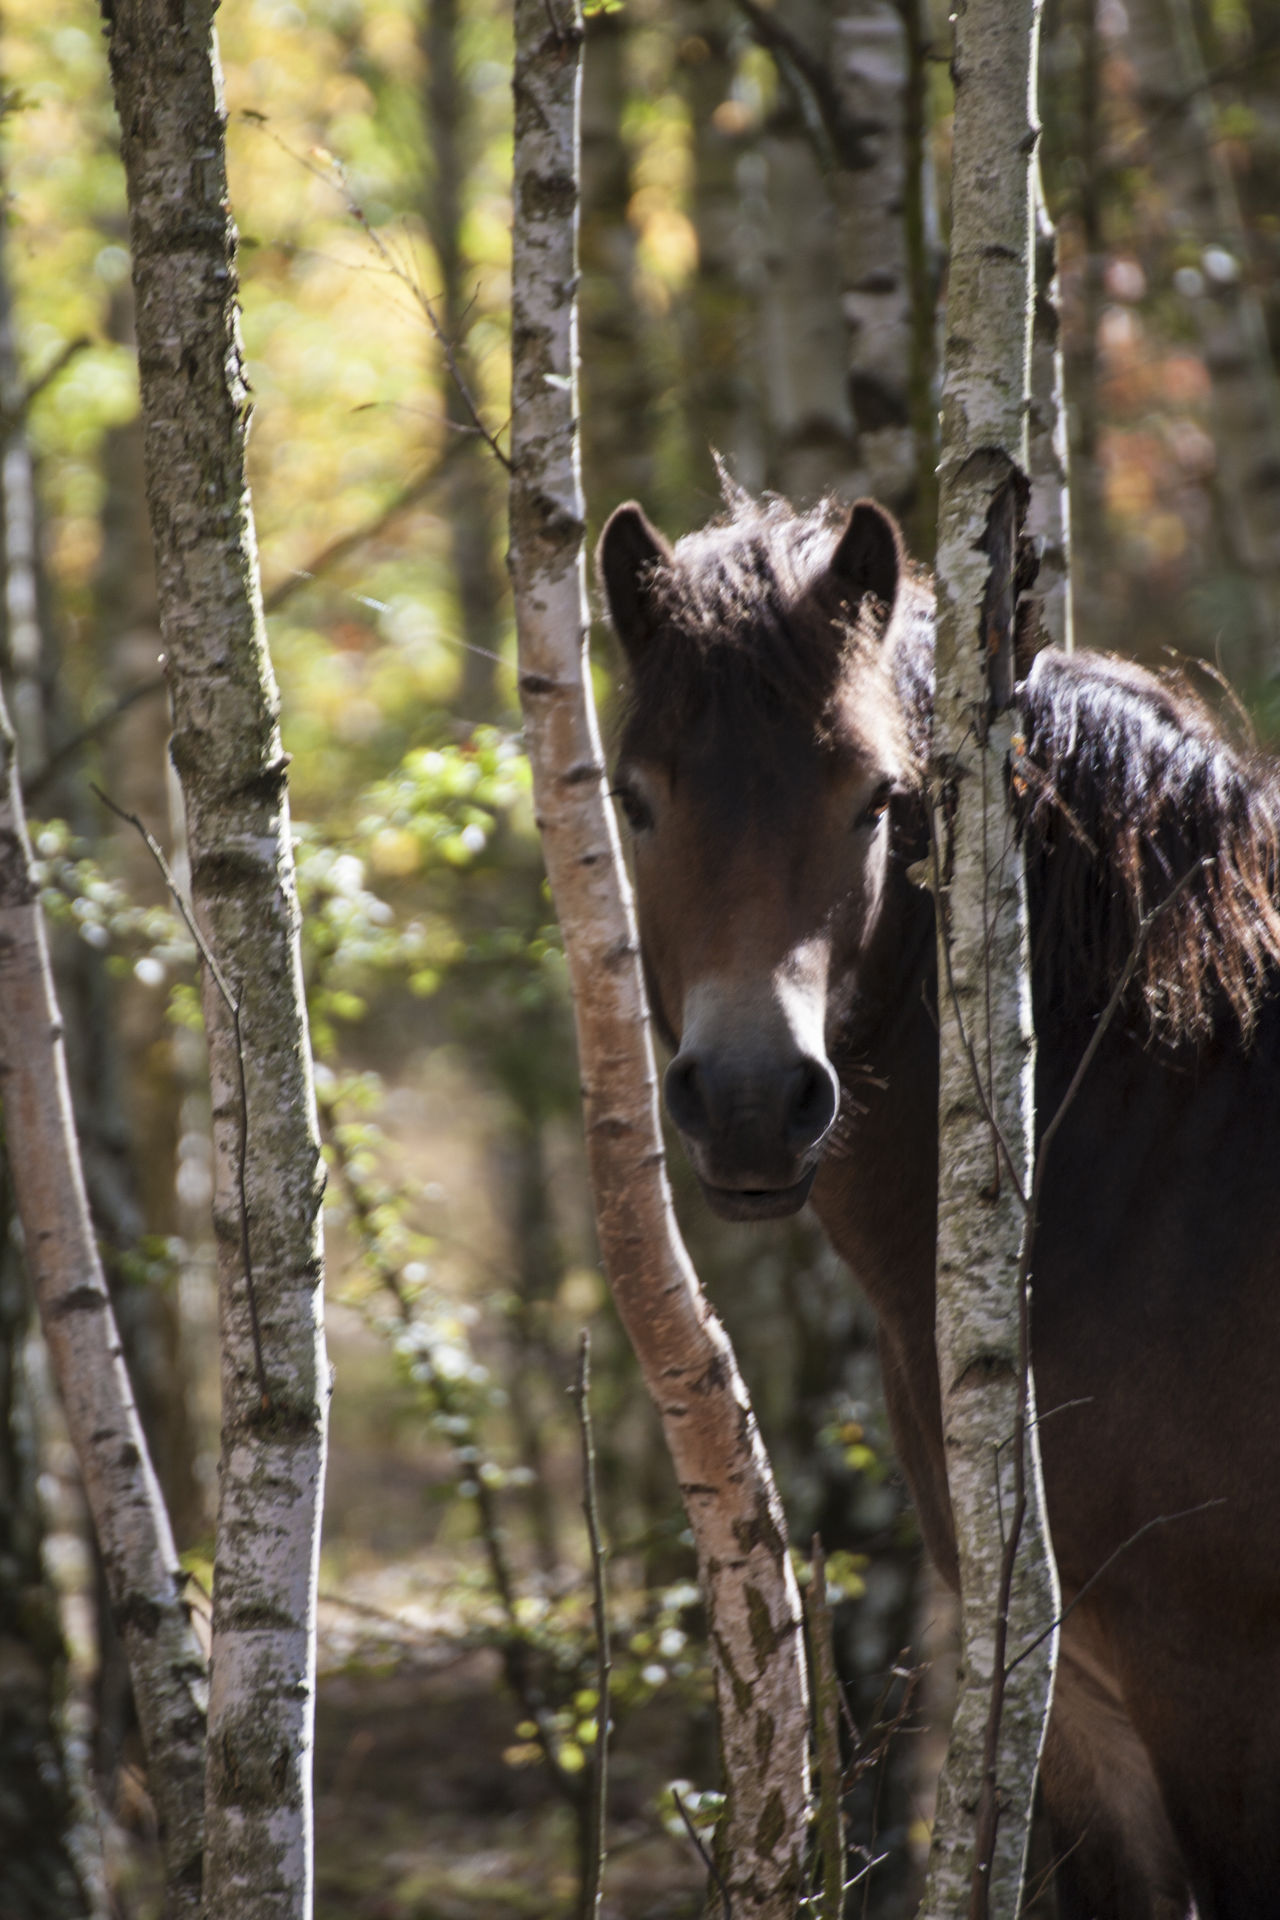 Animal Themes Animals In The Wild Forest Horse Horse In Woodland Mammal Nature One Animal Sunlight Tree Woodlands